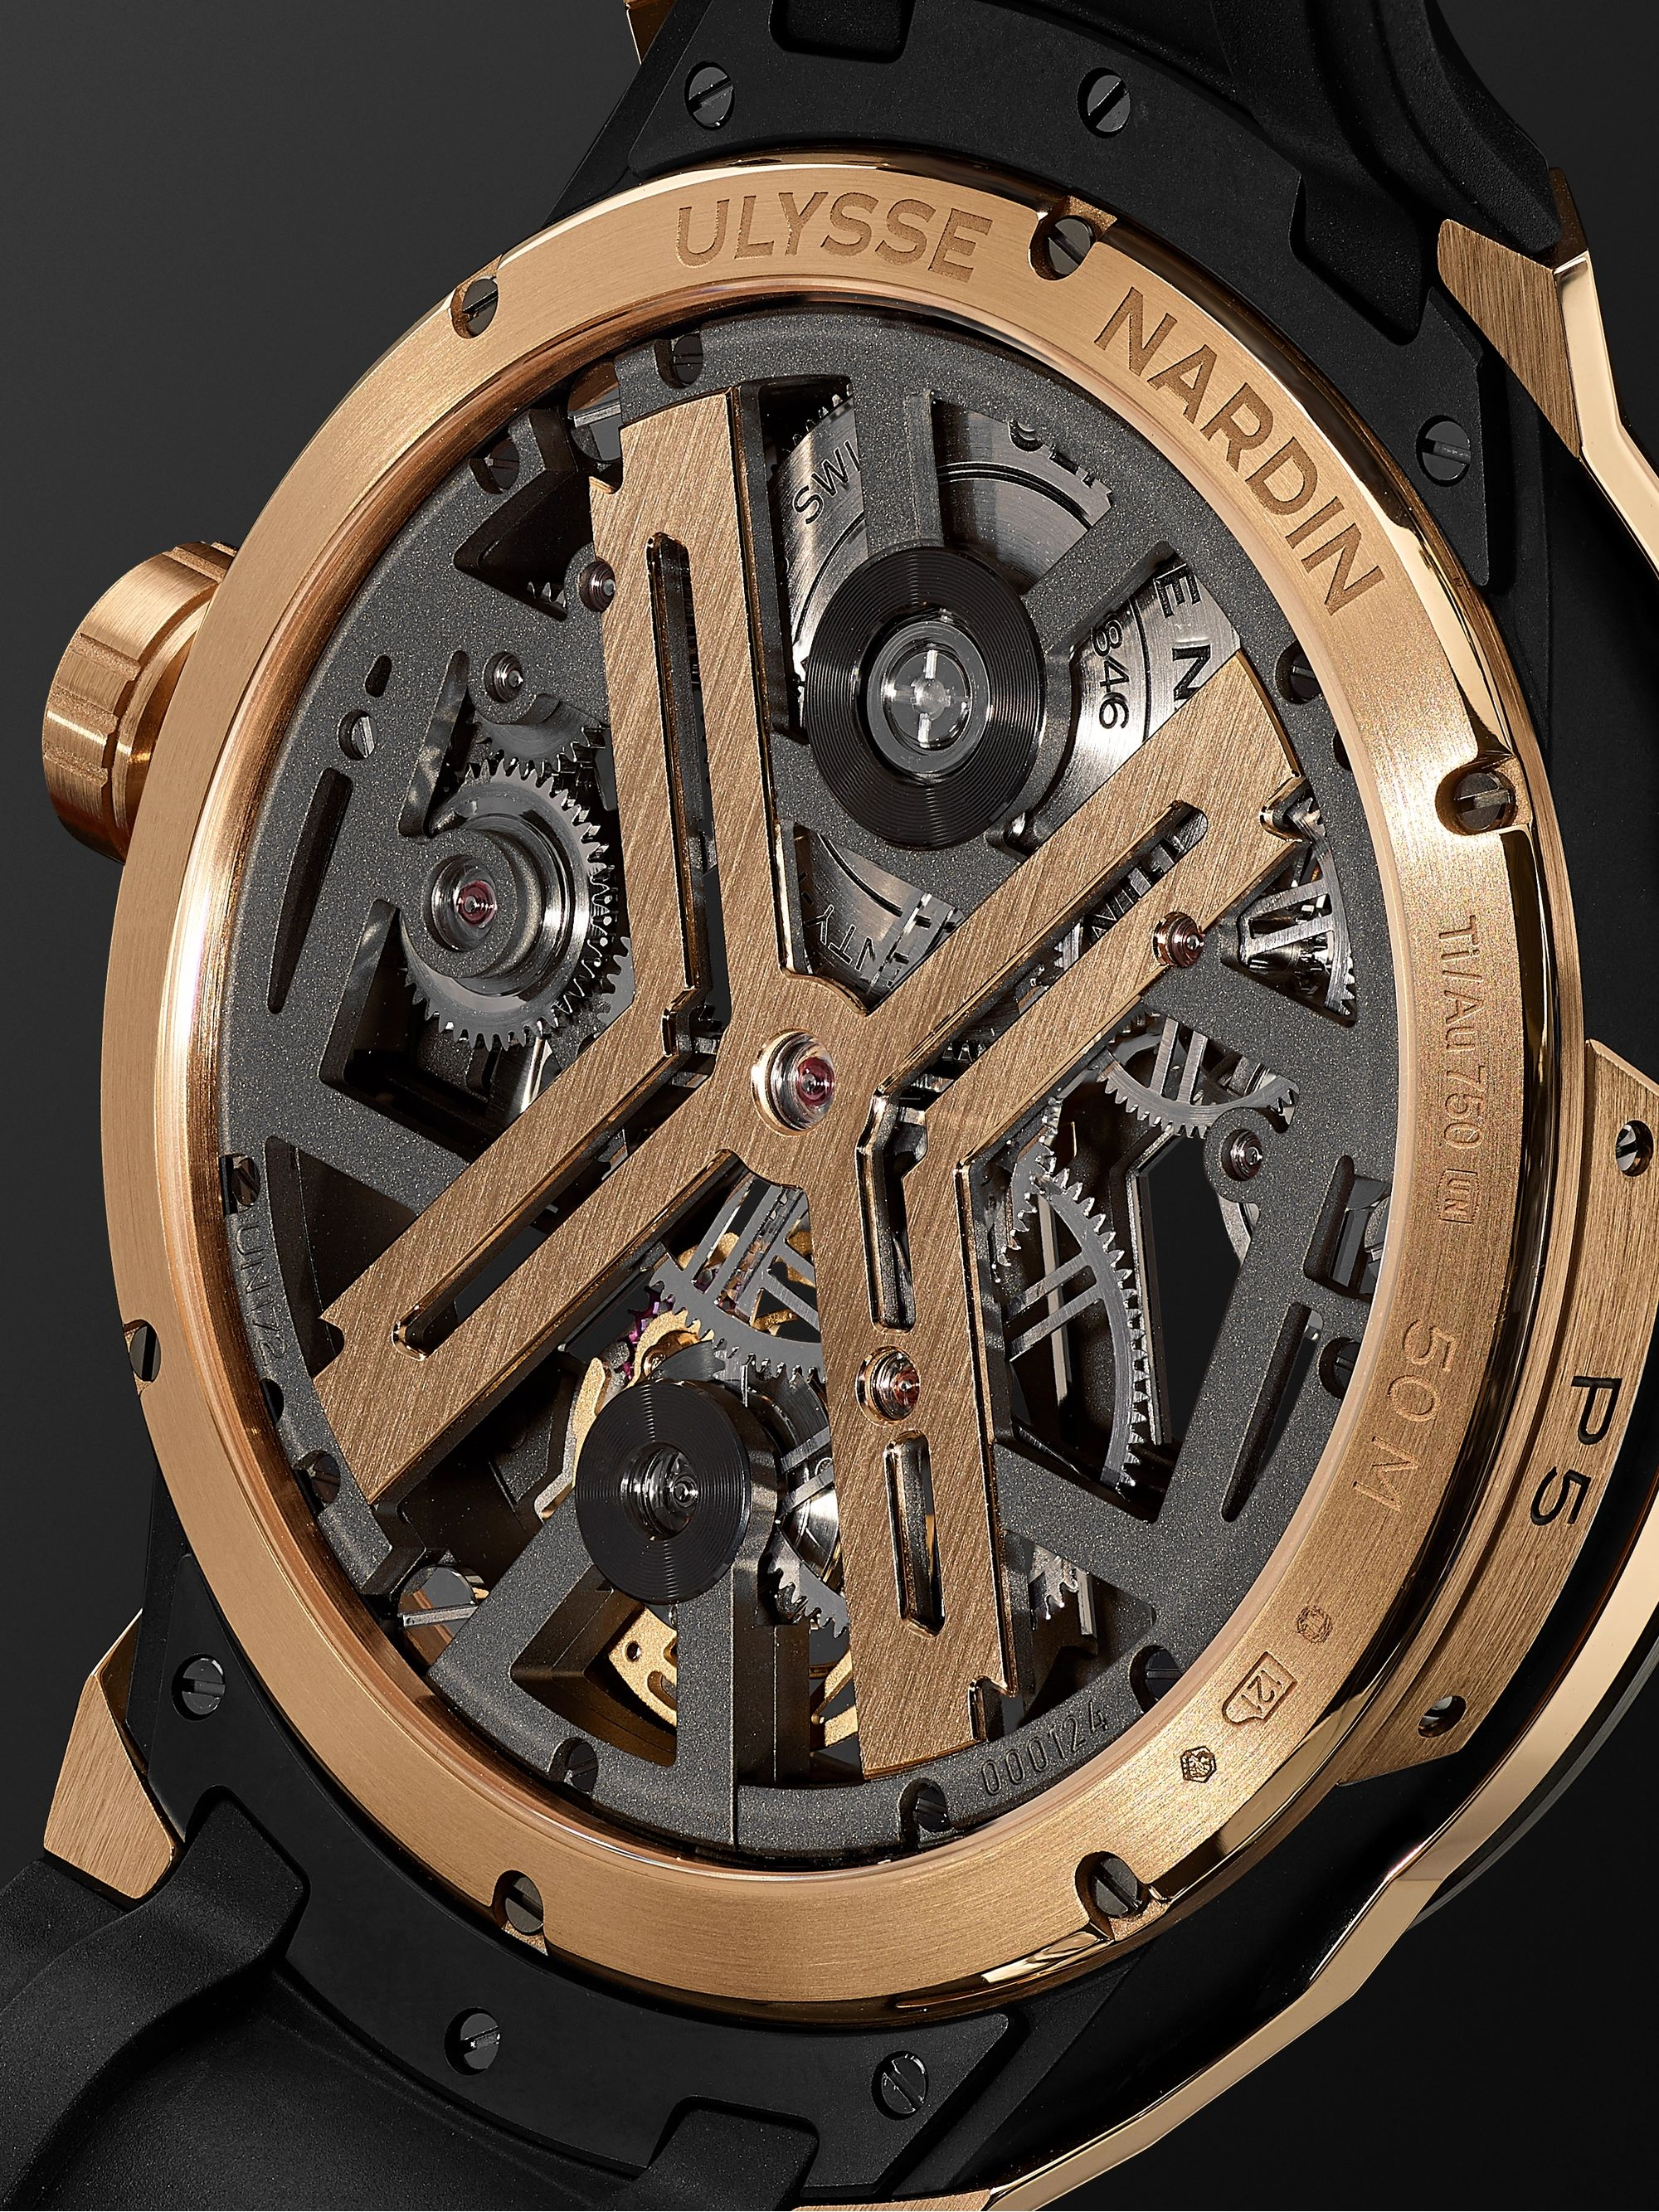 ULYSSE NARDIN Blast Automatic Tourbillon Skeleton 45mm 18-Karat Rose Gold, Titanium and Rubber Watch, Ref. No. 1725-400-3A/02